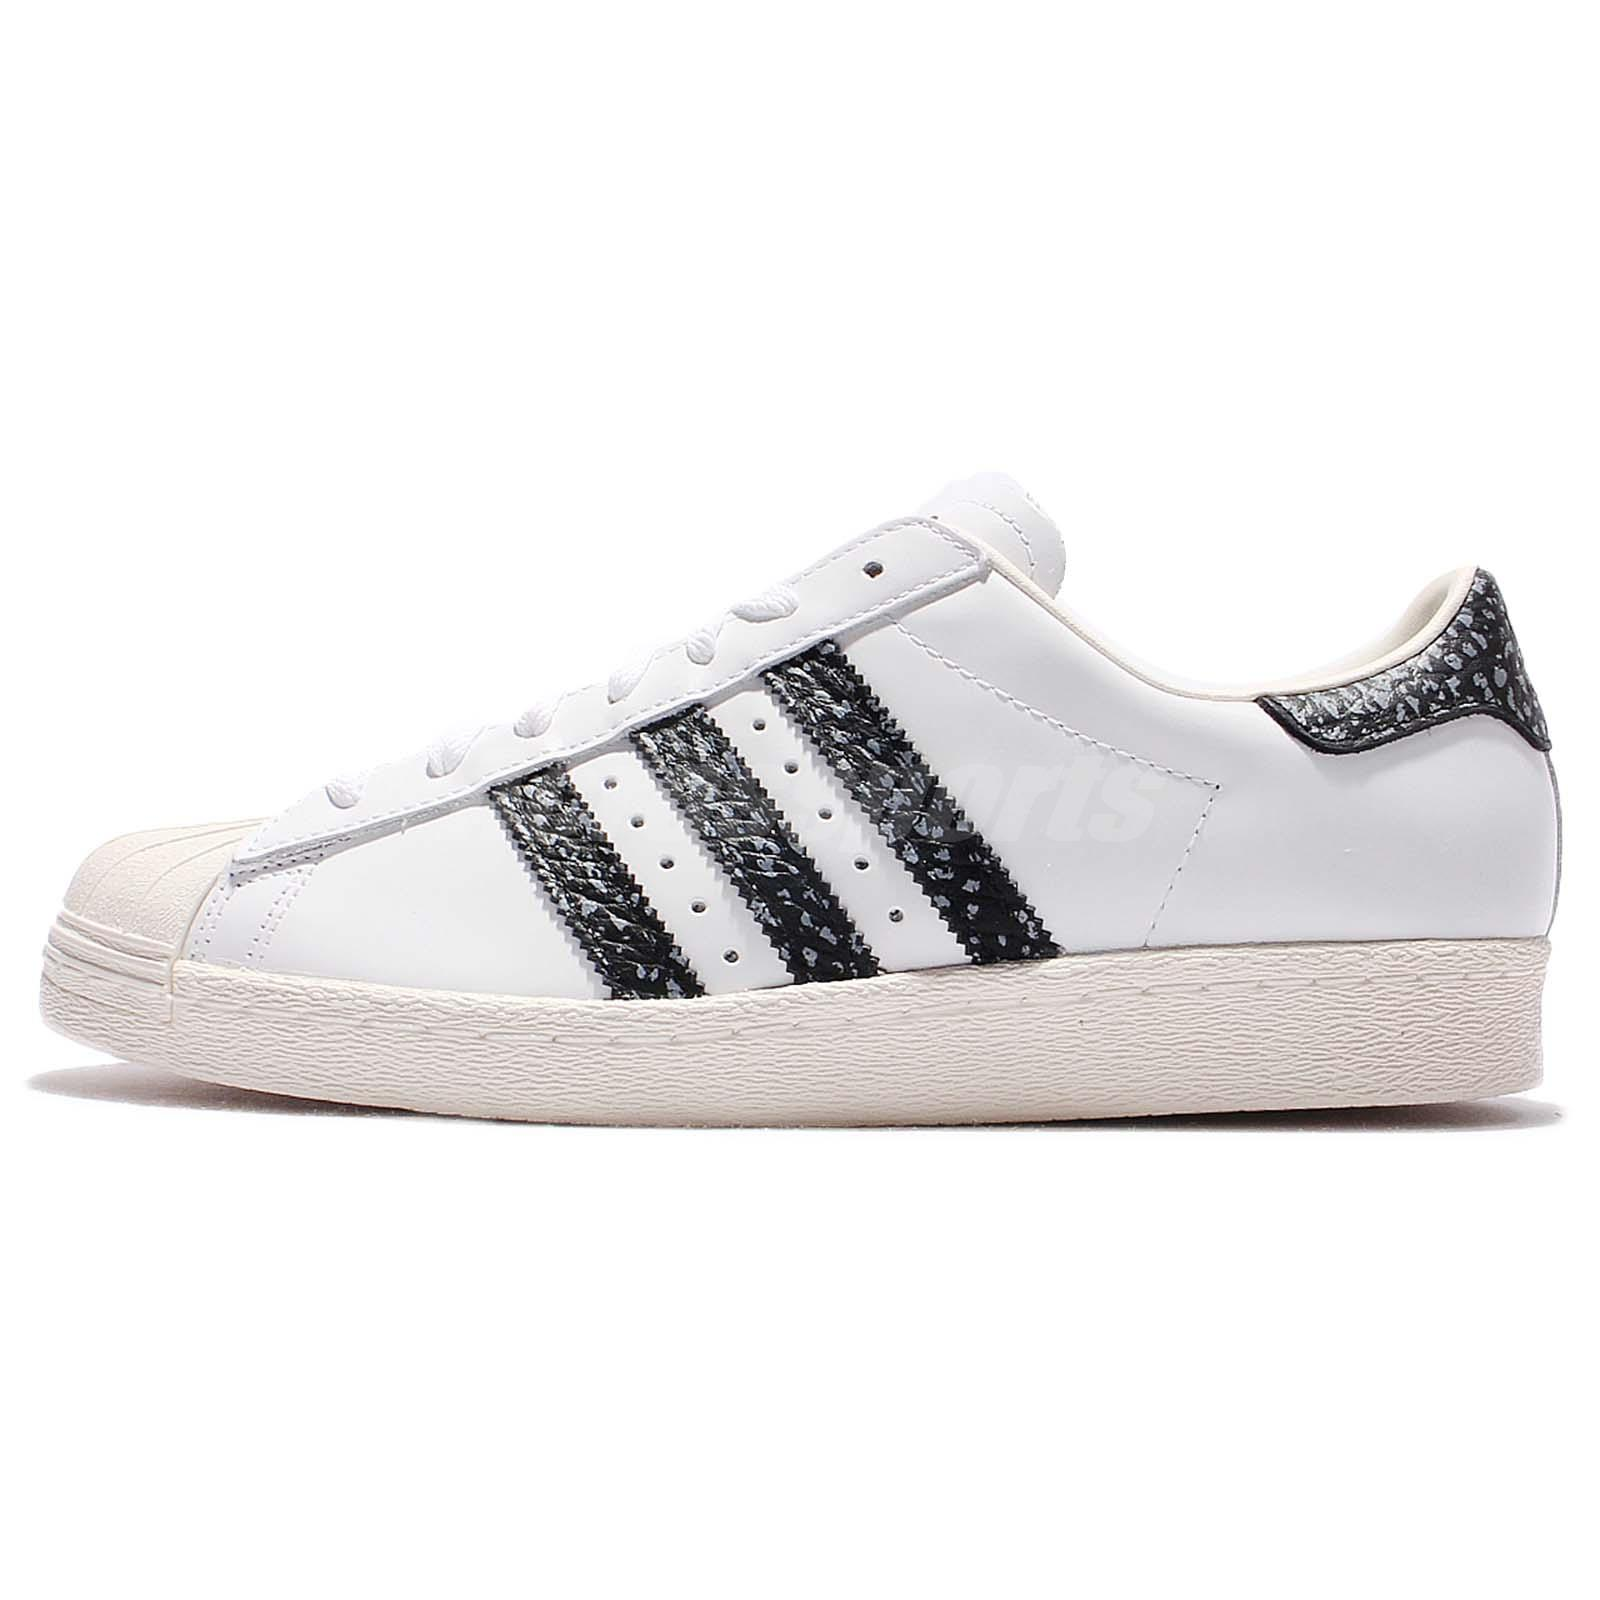 ... adidas originals superstar 80s white black snakeskin men classic shoes  s75847